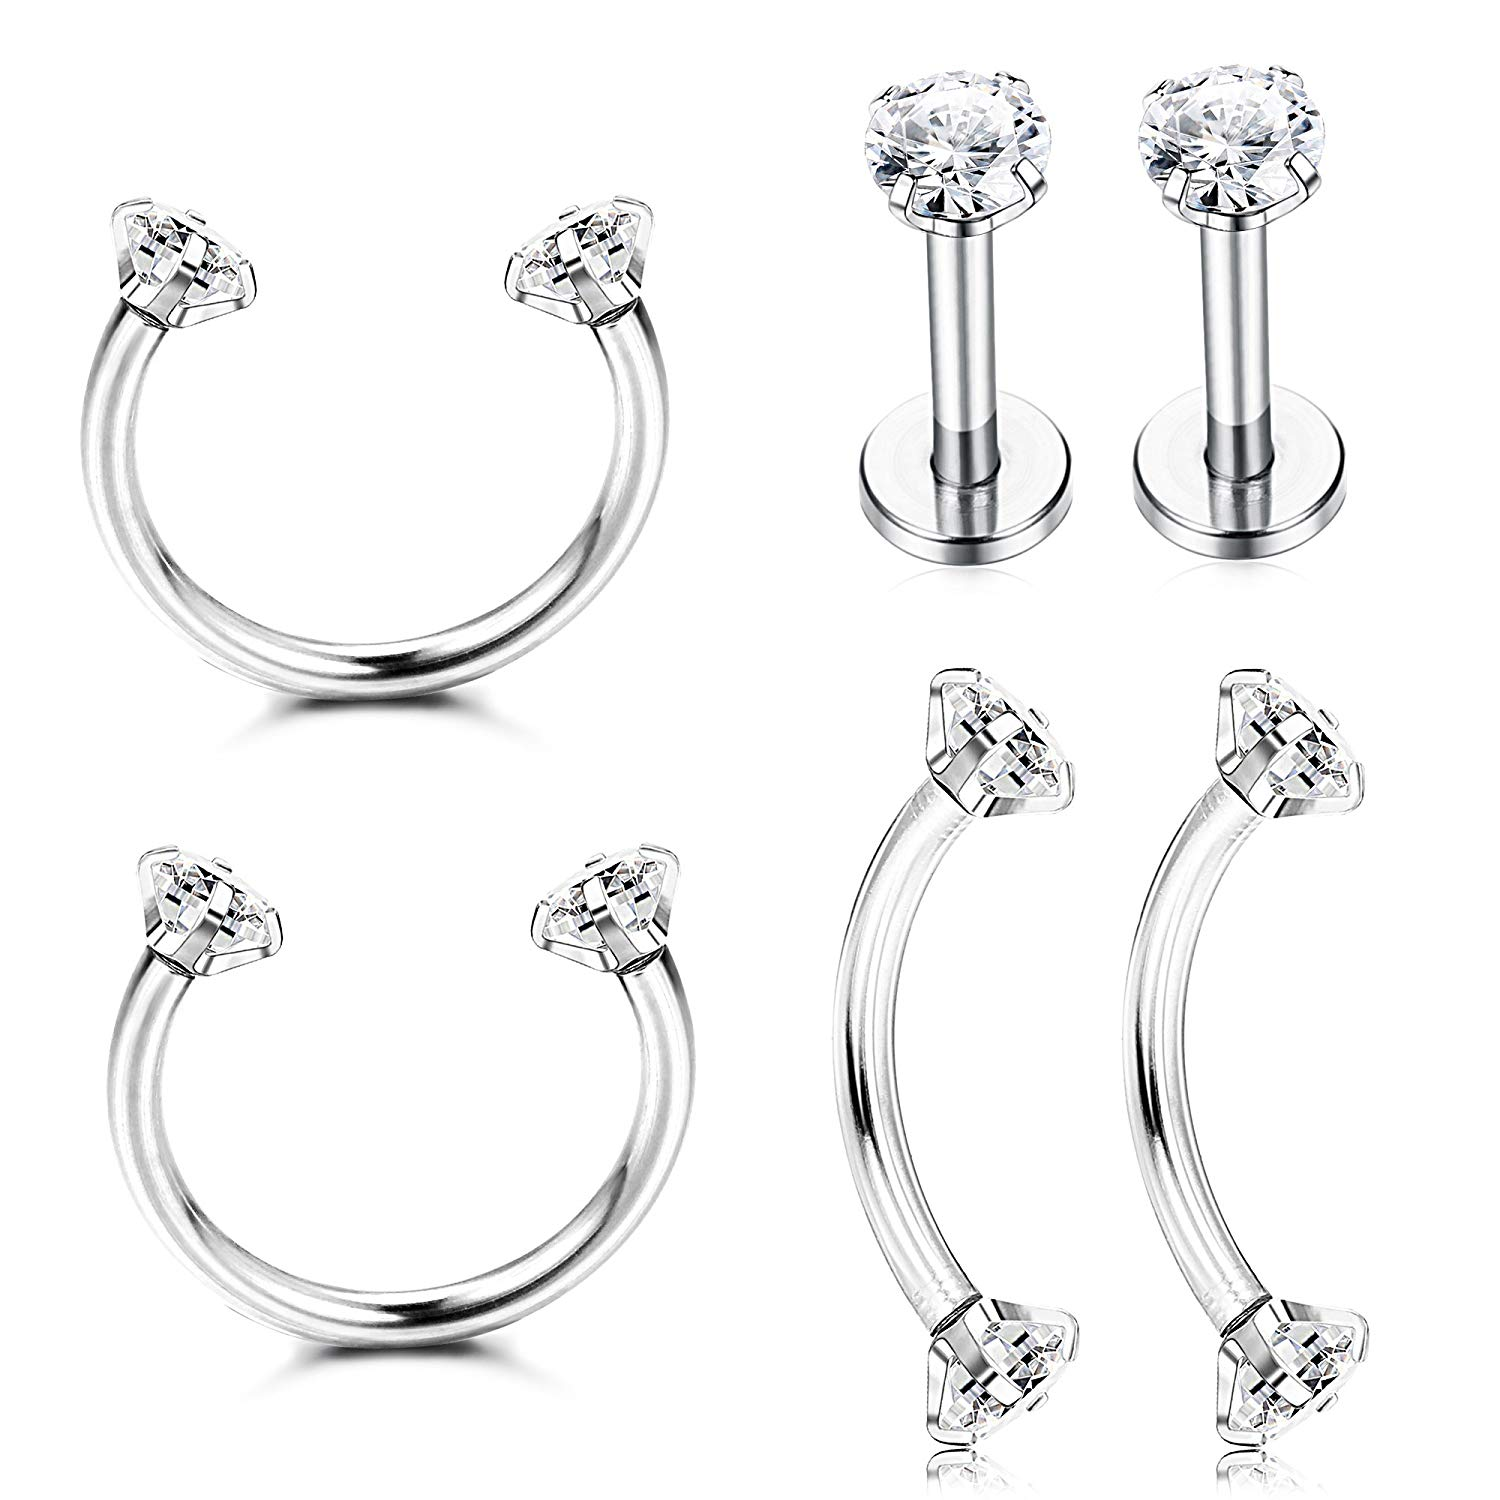 Cheap Tragus Piercing Jewelry Studs Find Tragus Piercing Jewelry